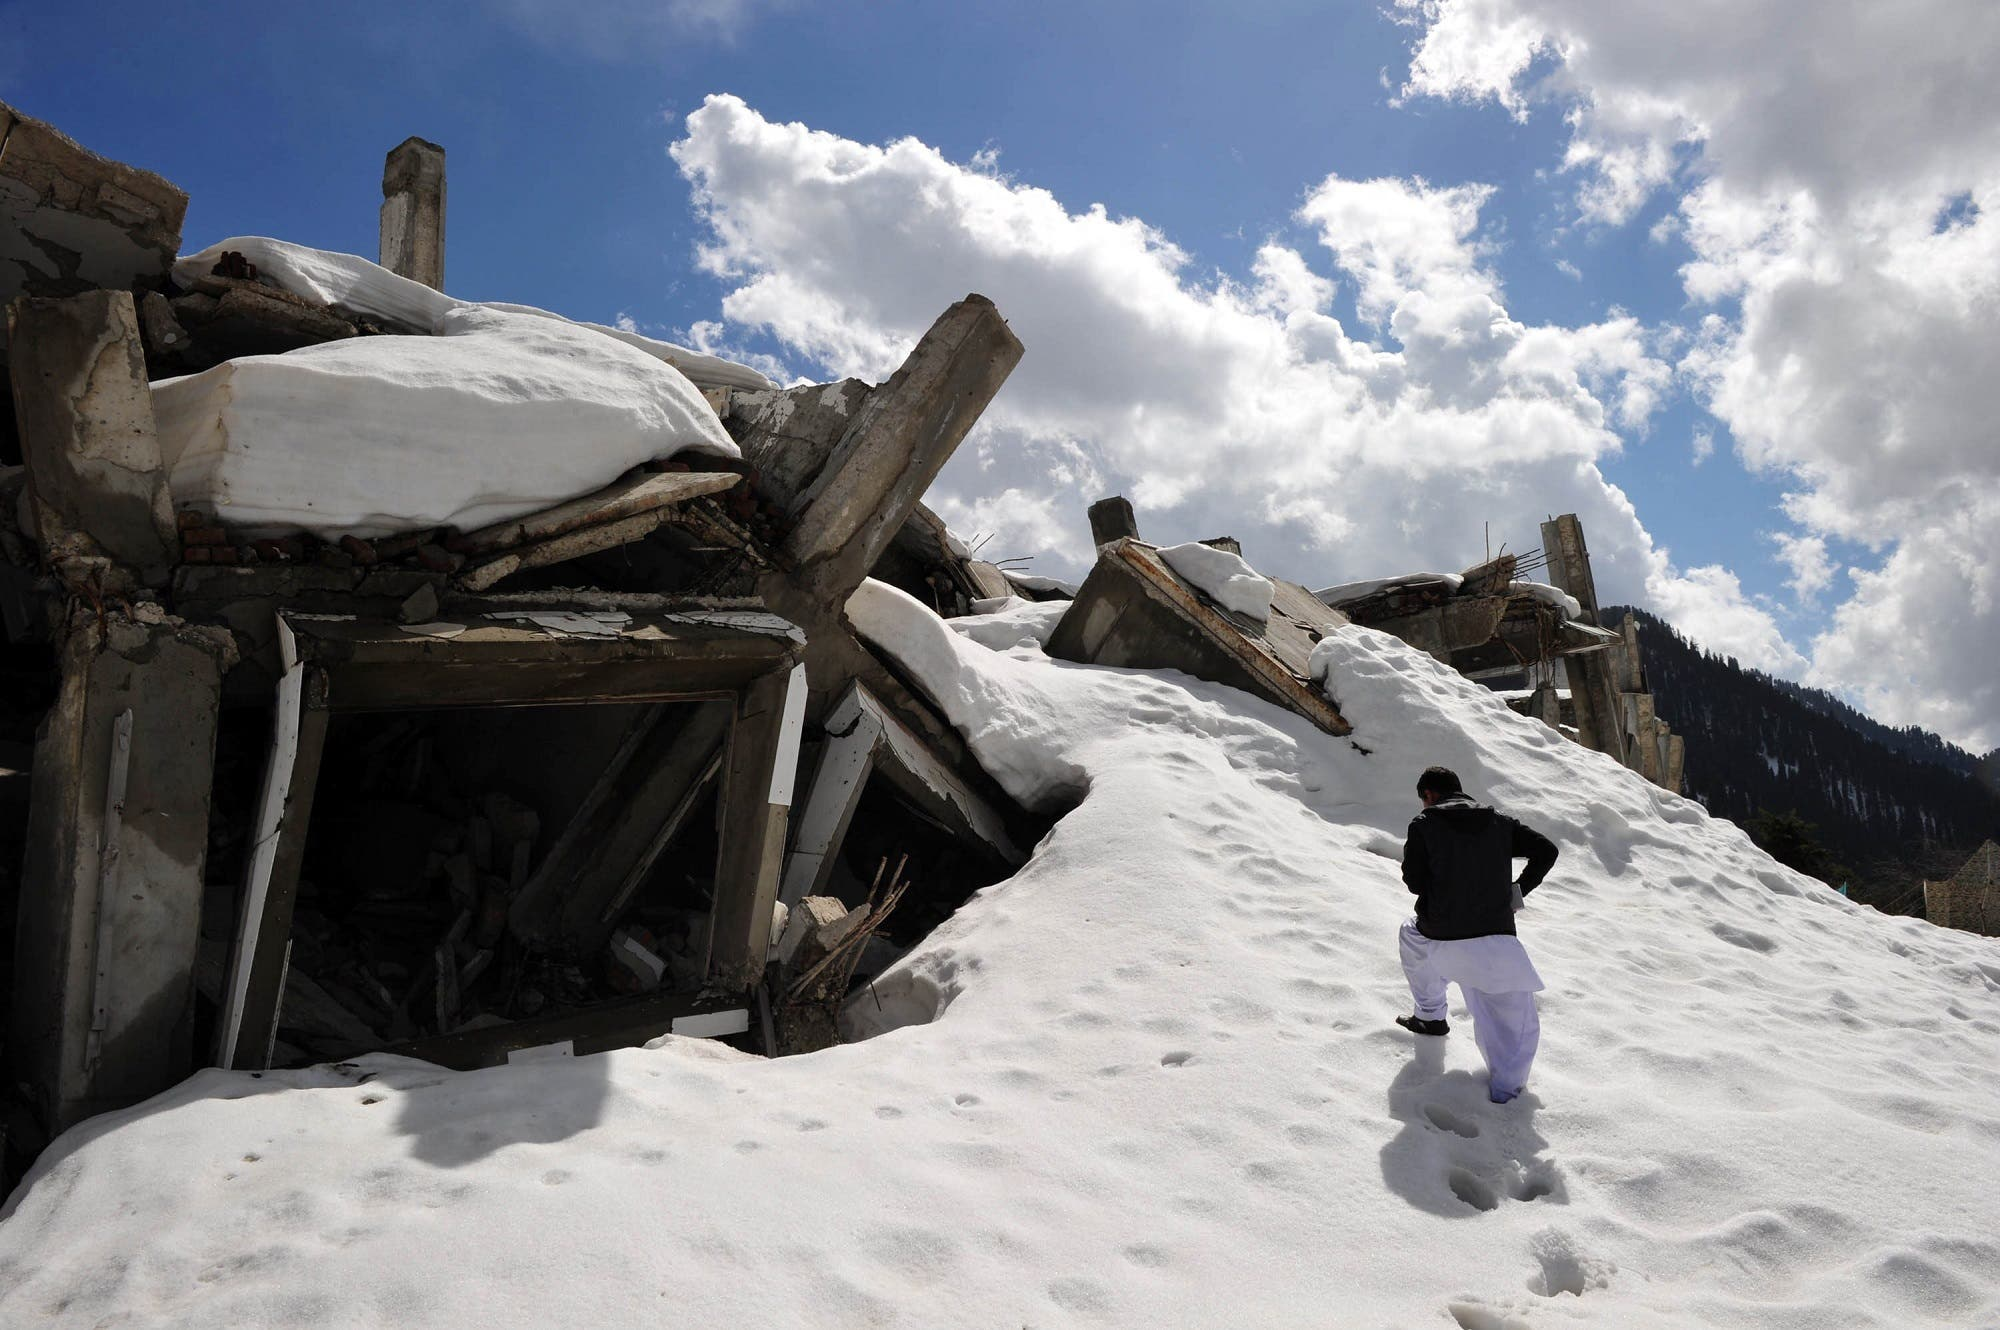 This March 20, 2011 photo shows a Pakistani man walking over part of the snow-covered destroyed 72-room hotel in the mountains of the Malam Jabba resort, 300 km northwest of Islamabad in the Swat Valley. (AFP)